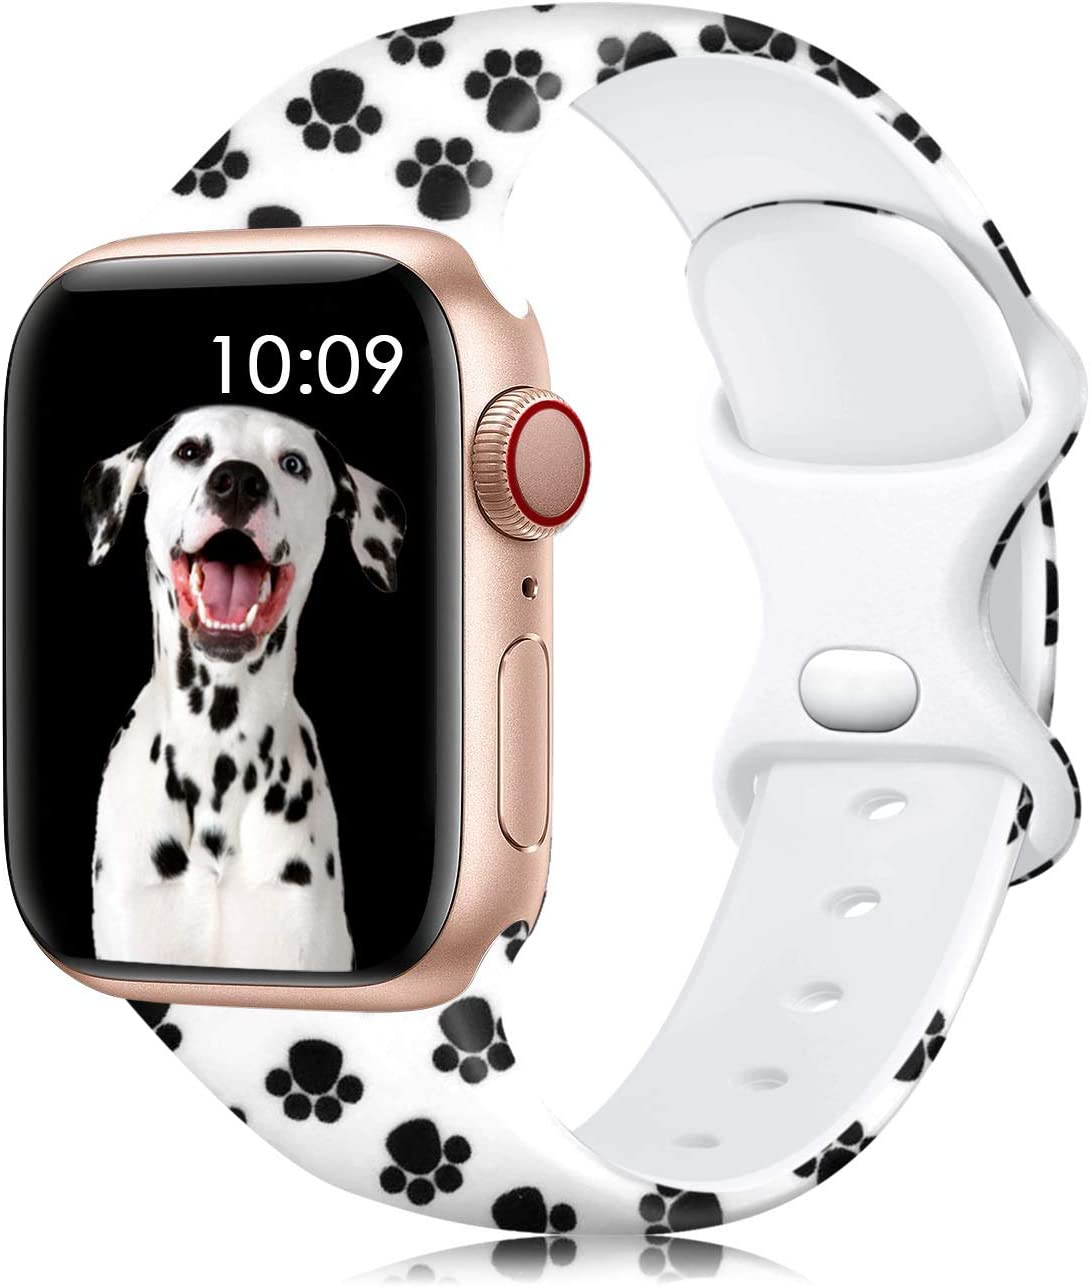 Lerobo Band Compatible with Apple Watch Band 40mm 38mm for Women Men, Fancy Cute Silicone Pattern Printed Replacement Band for iWatch SE Series 6 Series 5 Serise 4 Serise 3 2 1, Paw Print S/M